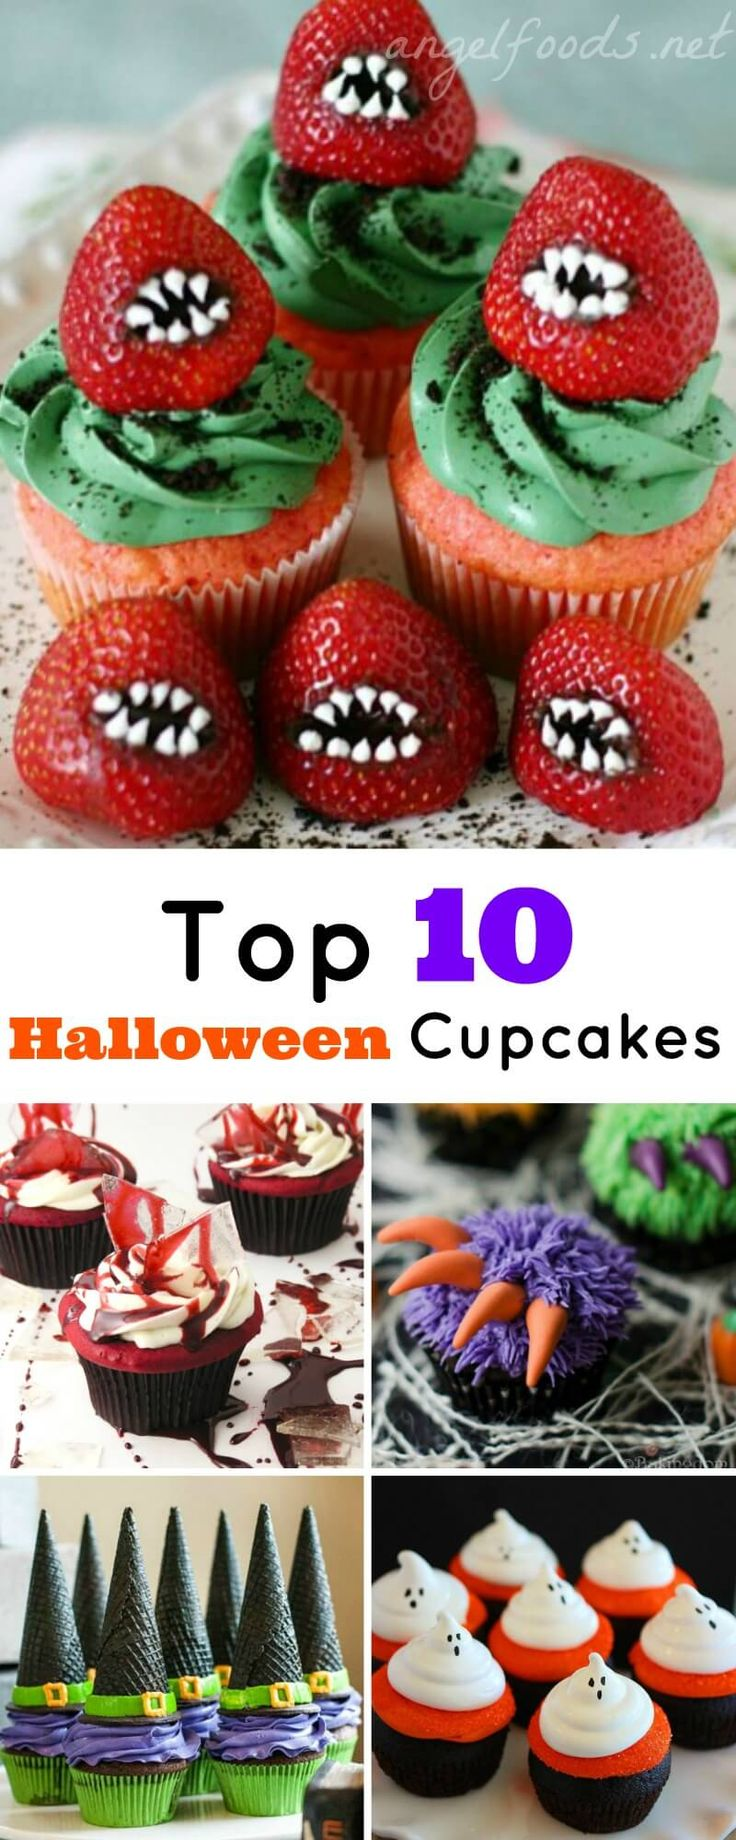 Top 10 Halloween Cupcakes | On the hunt for Halloween cupcake ideas for 2016 then I can help with the most popular pins on Pinterest. You are going to love this collection!